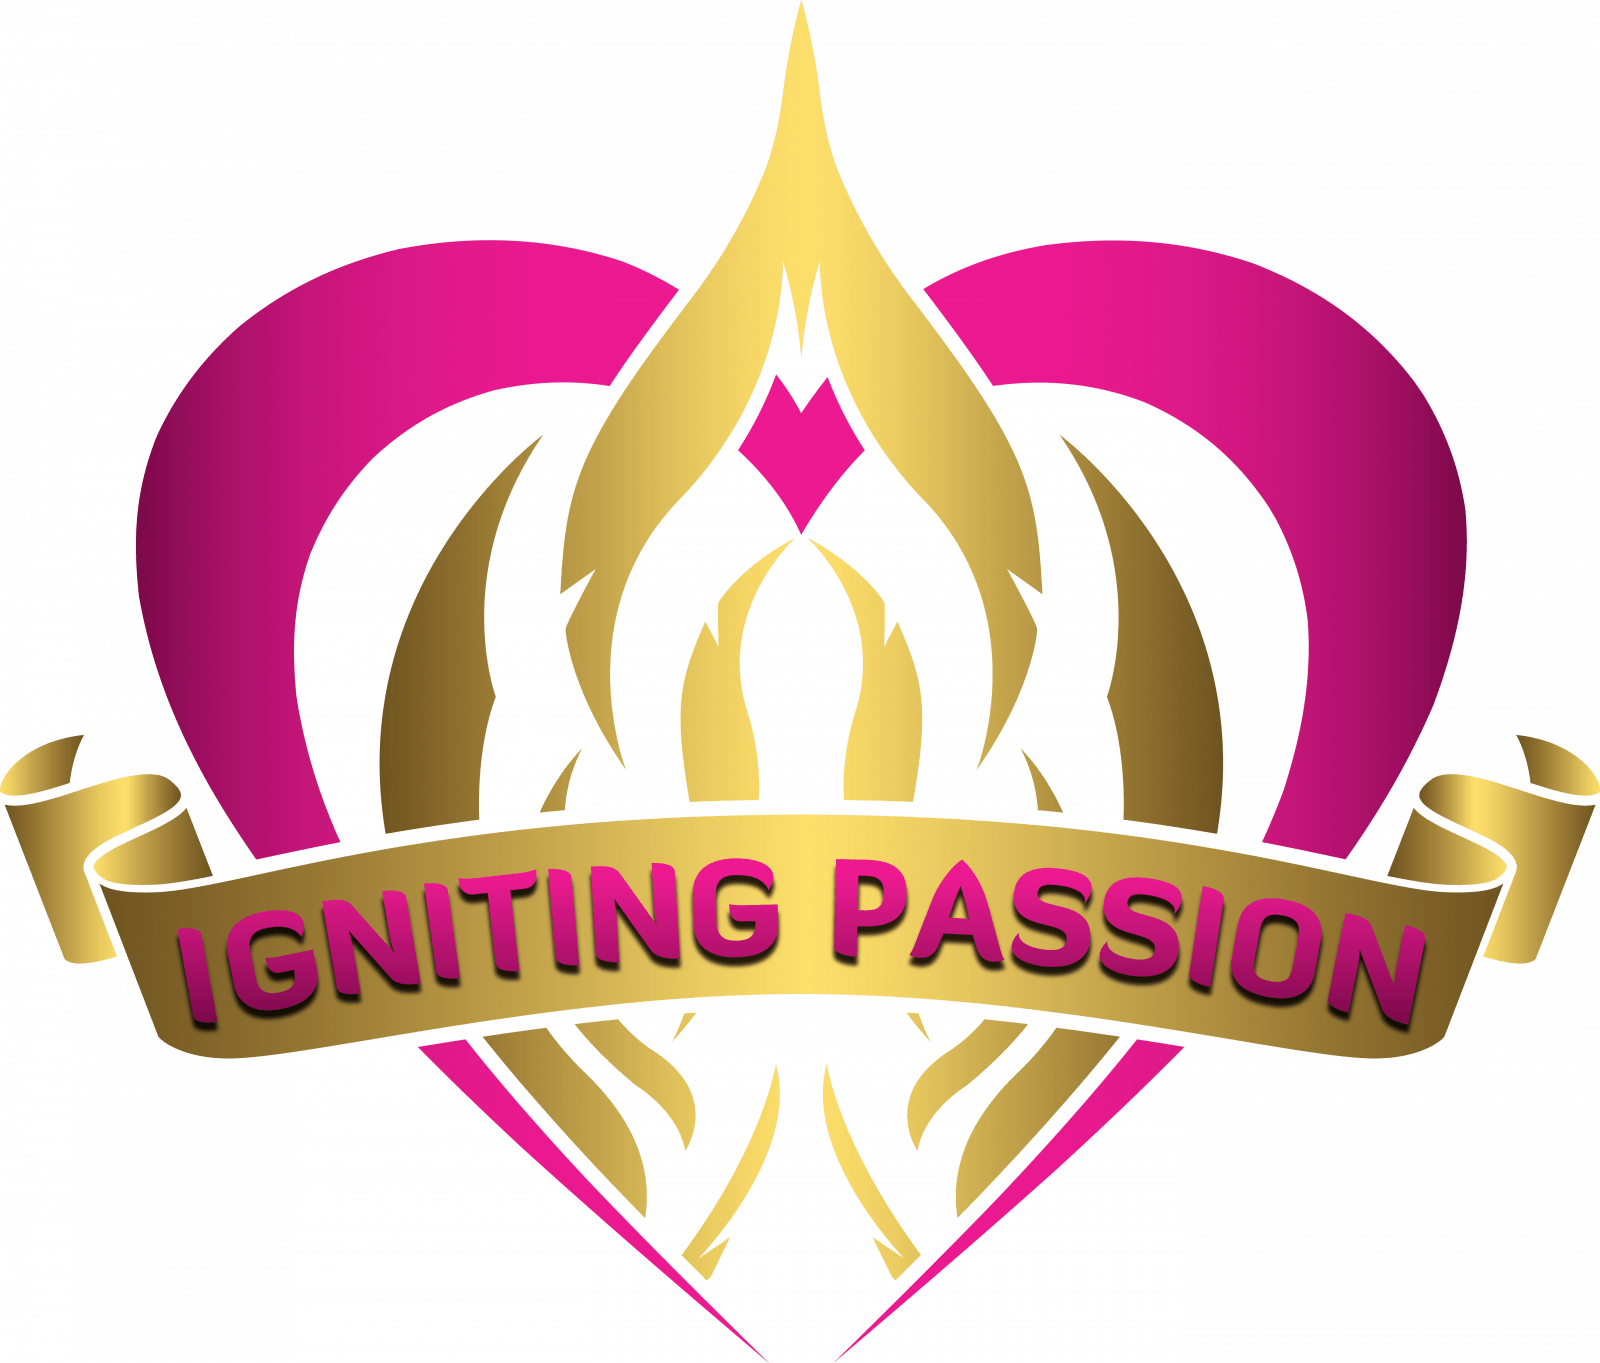 Igniting Passion